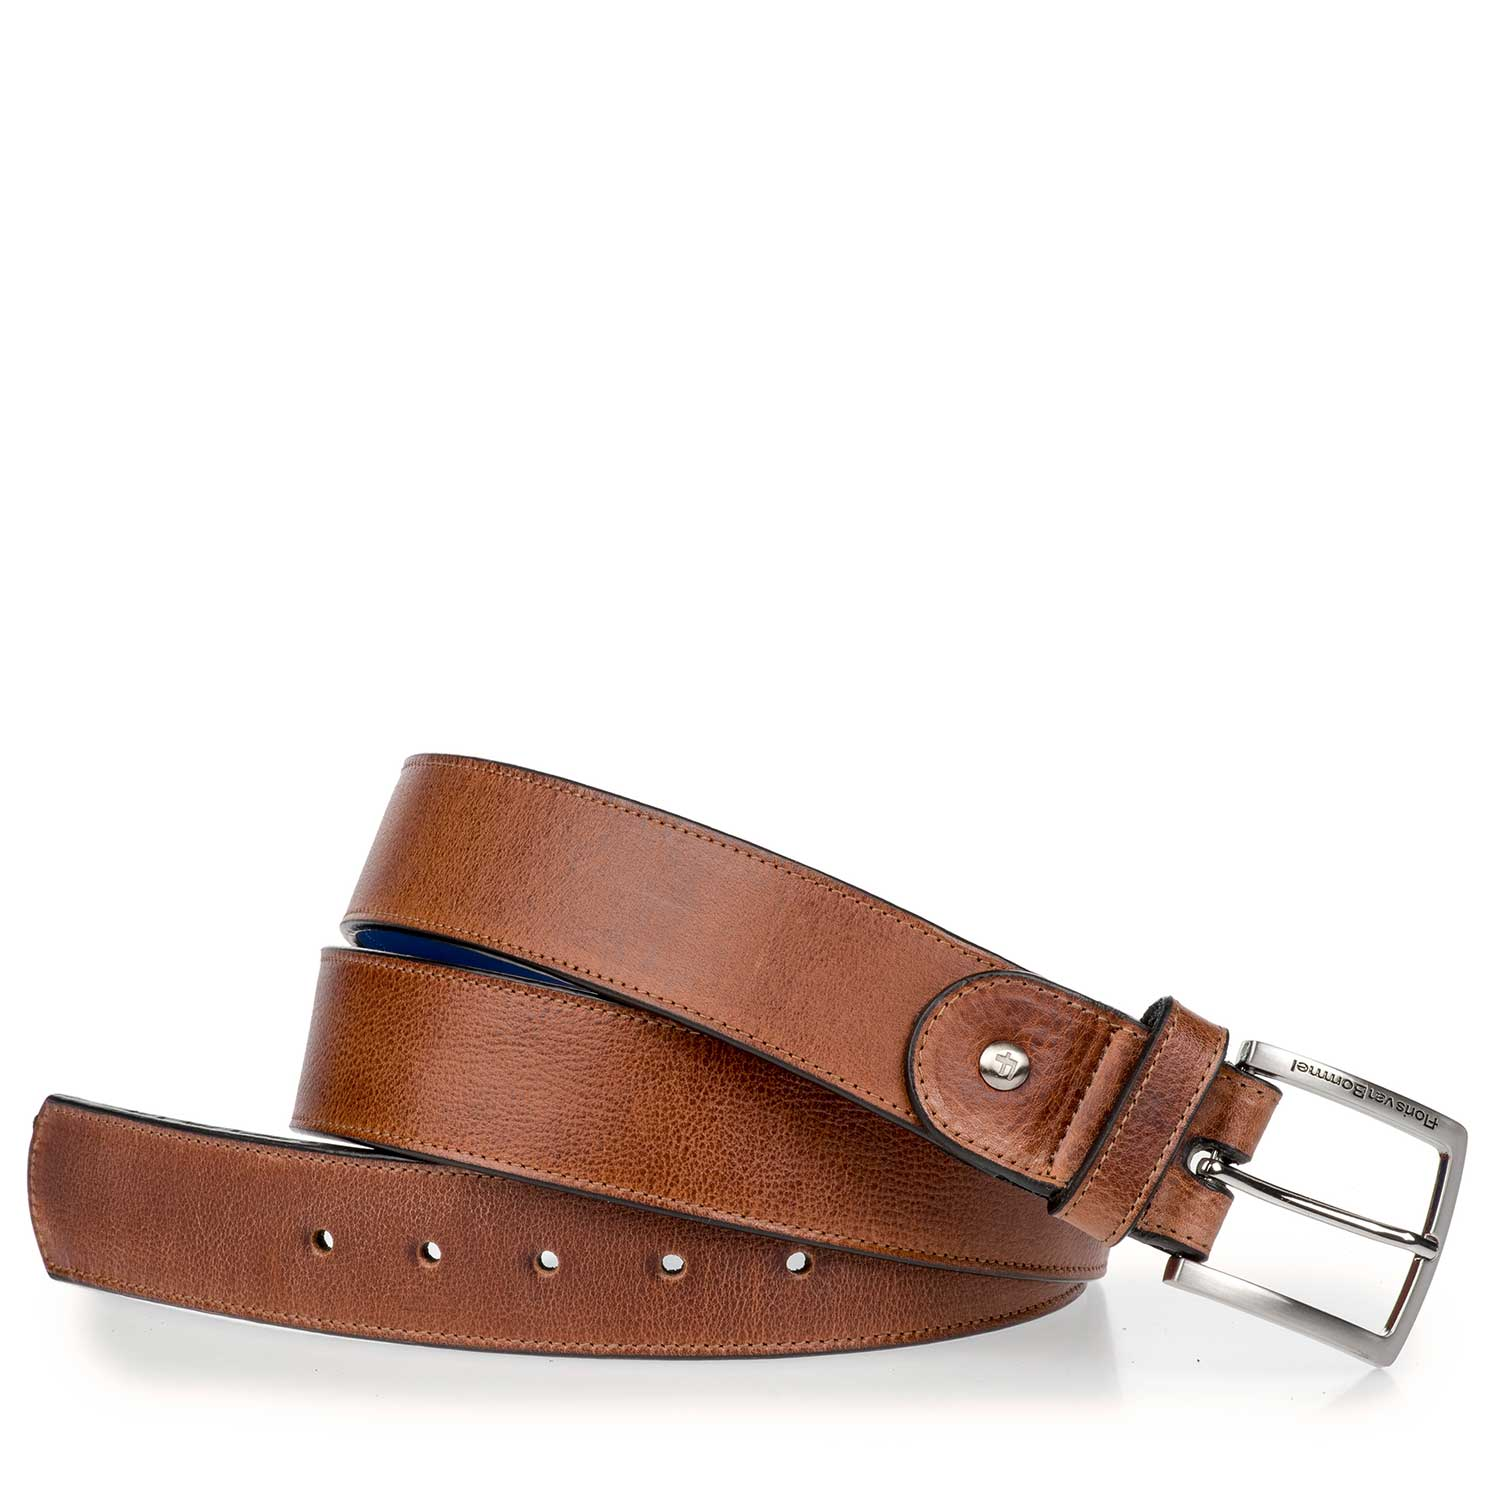 75157/07 - Cognac-coloured leather belt